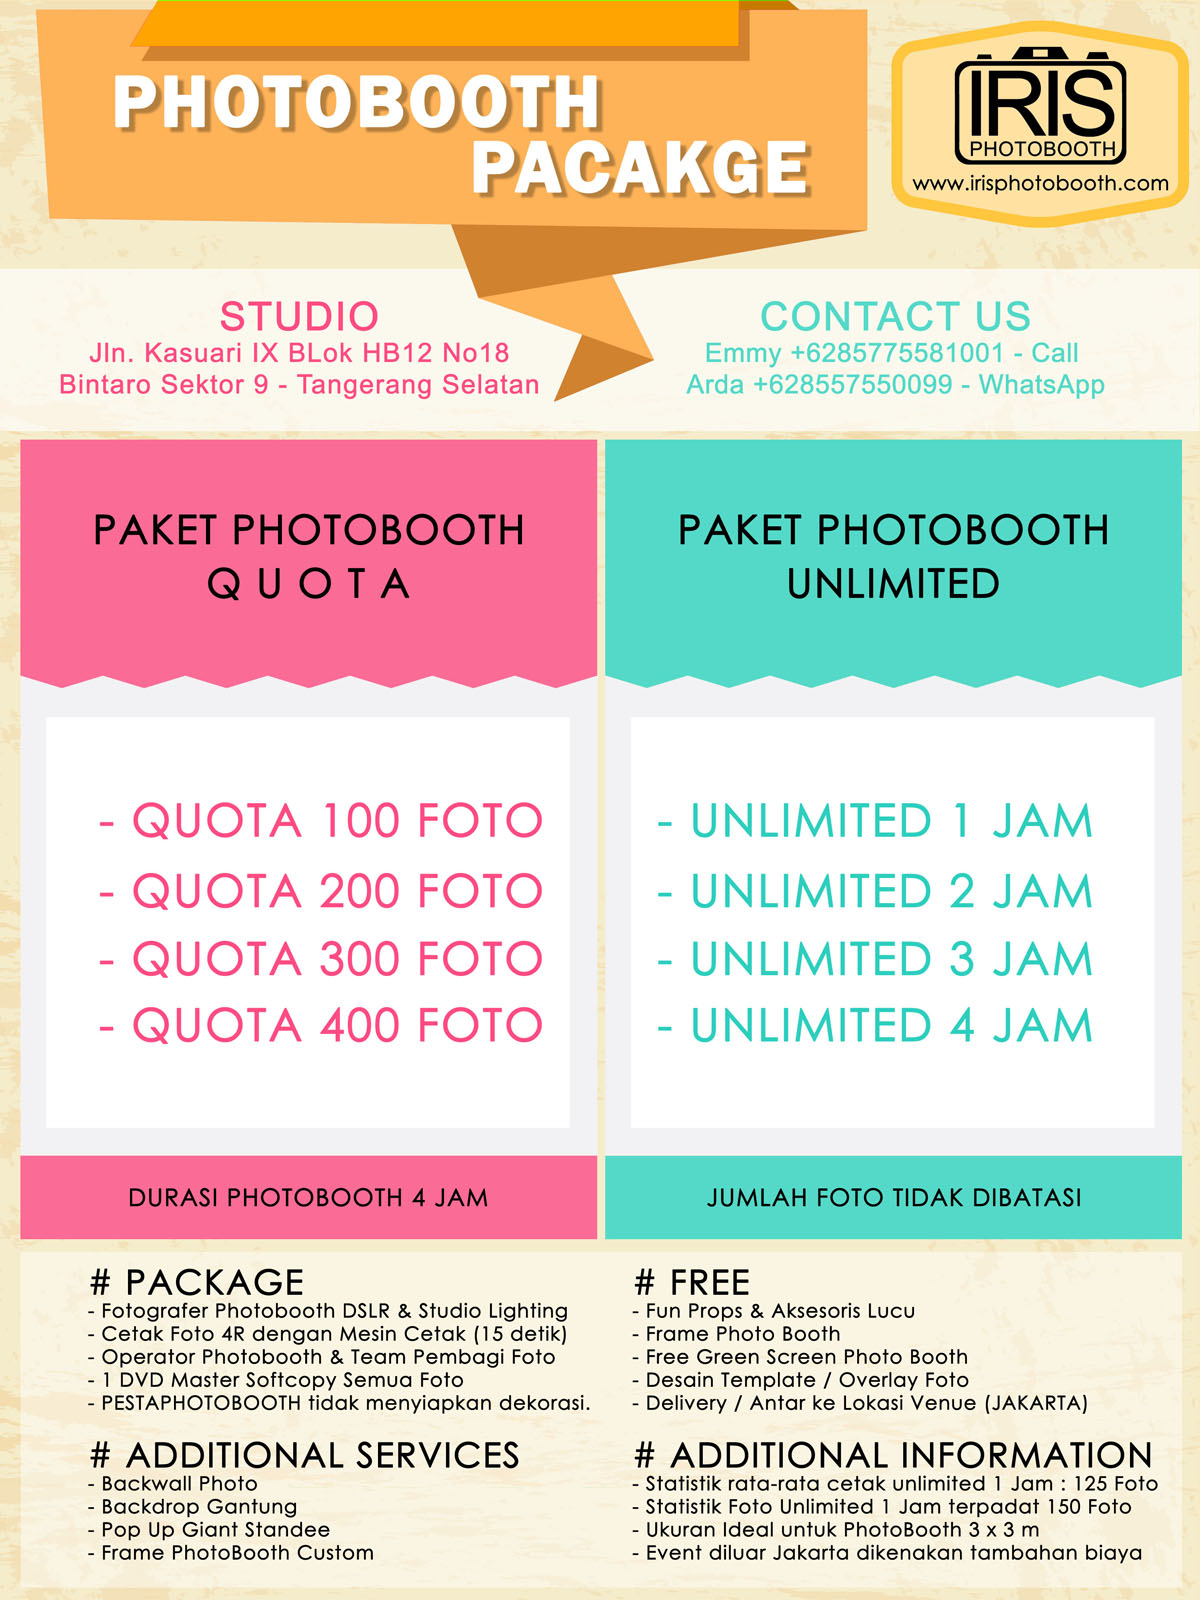 Pricelist photobooth murah